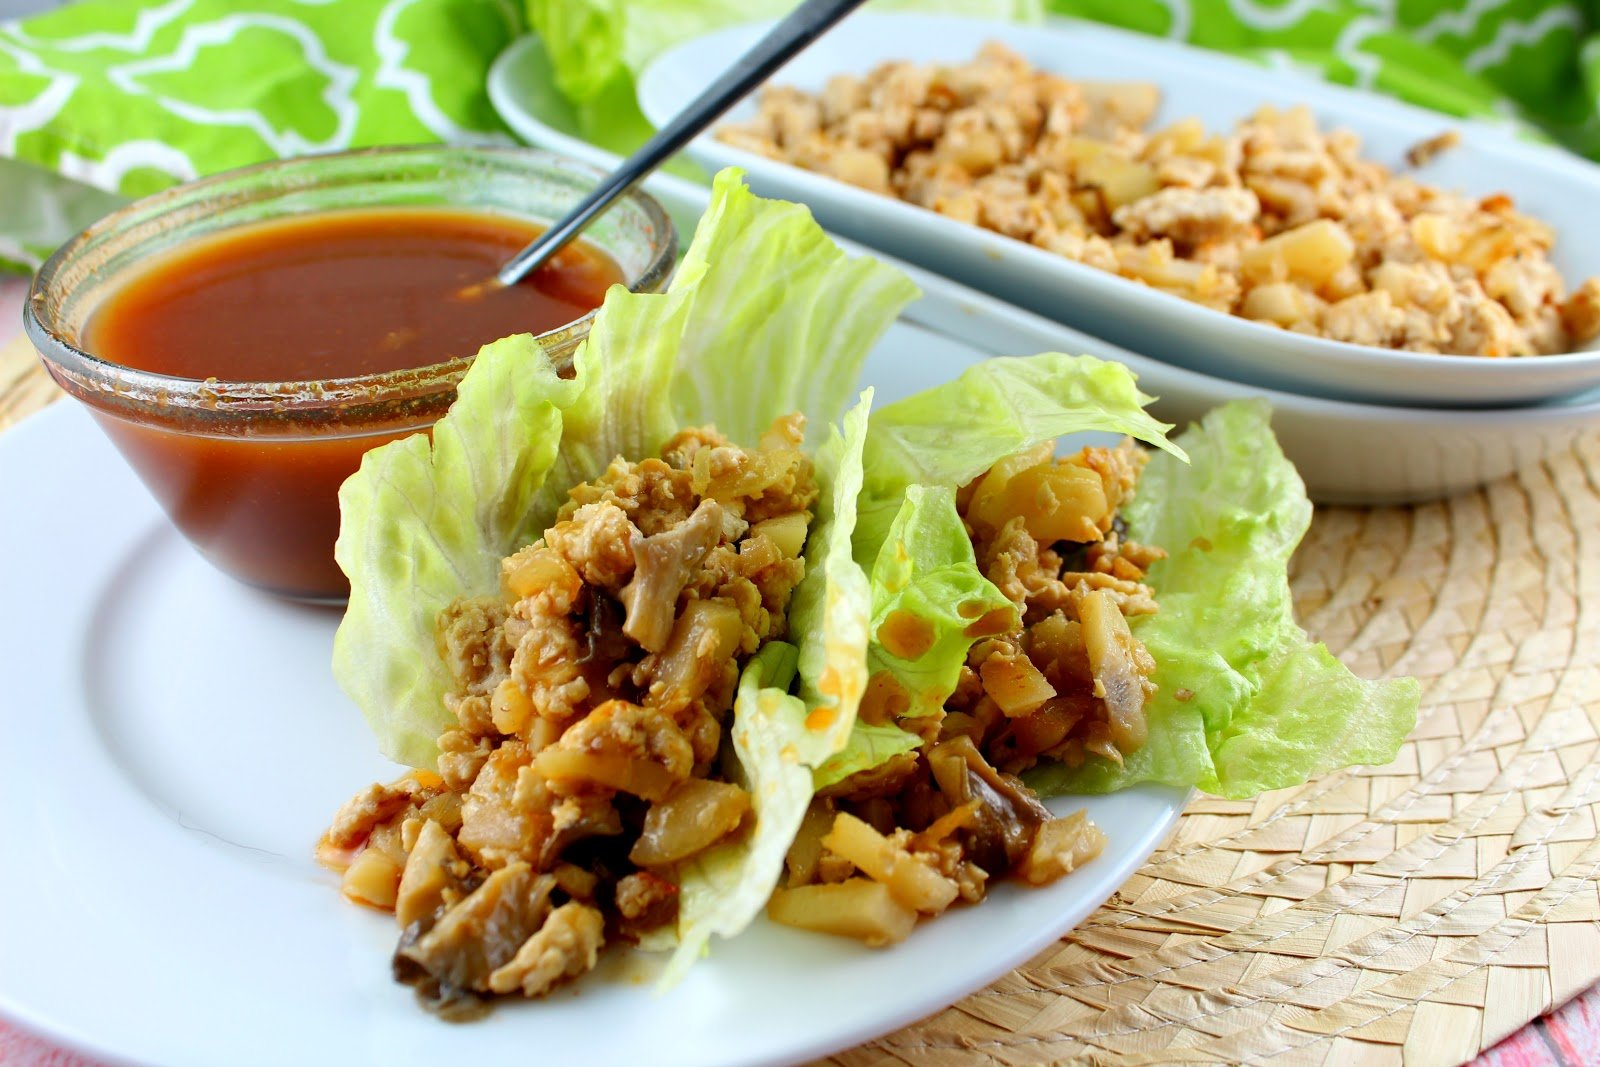 Copycat PF Chang's Lettuce Wraps are so delicious and easy to make! Plus they're quick - dinner on the table in 20 minutes! Yes Please! (And they're delicious!!!)